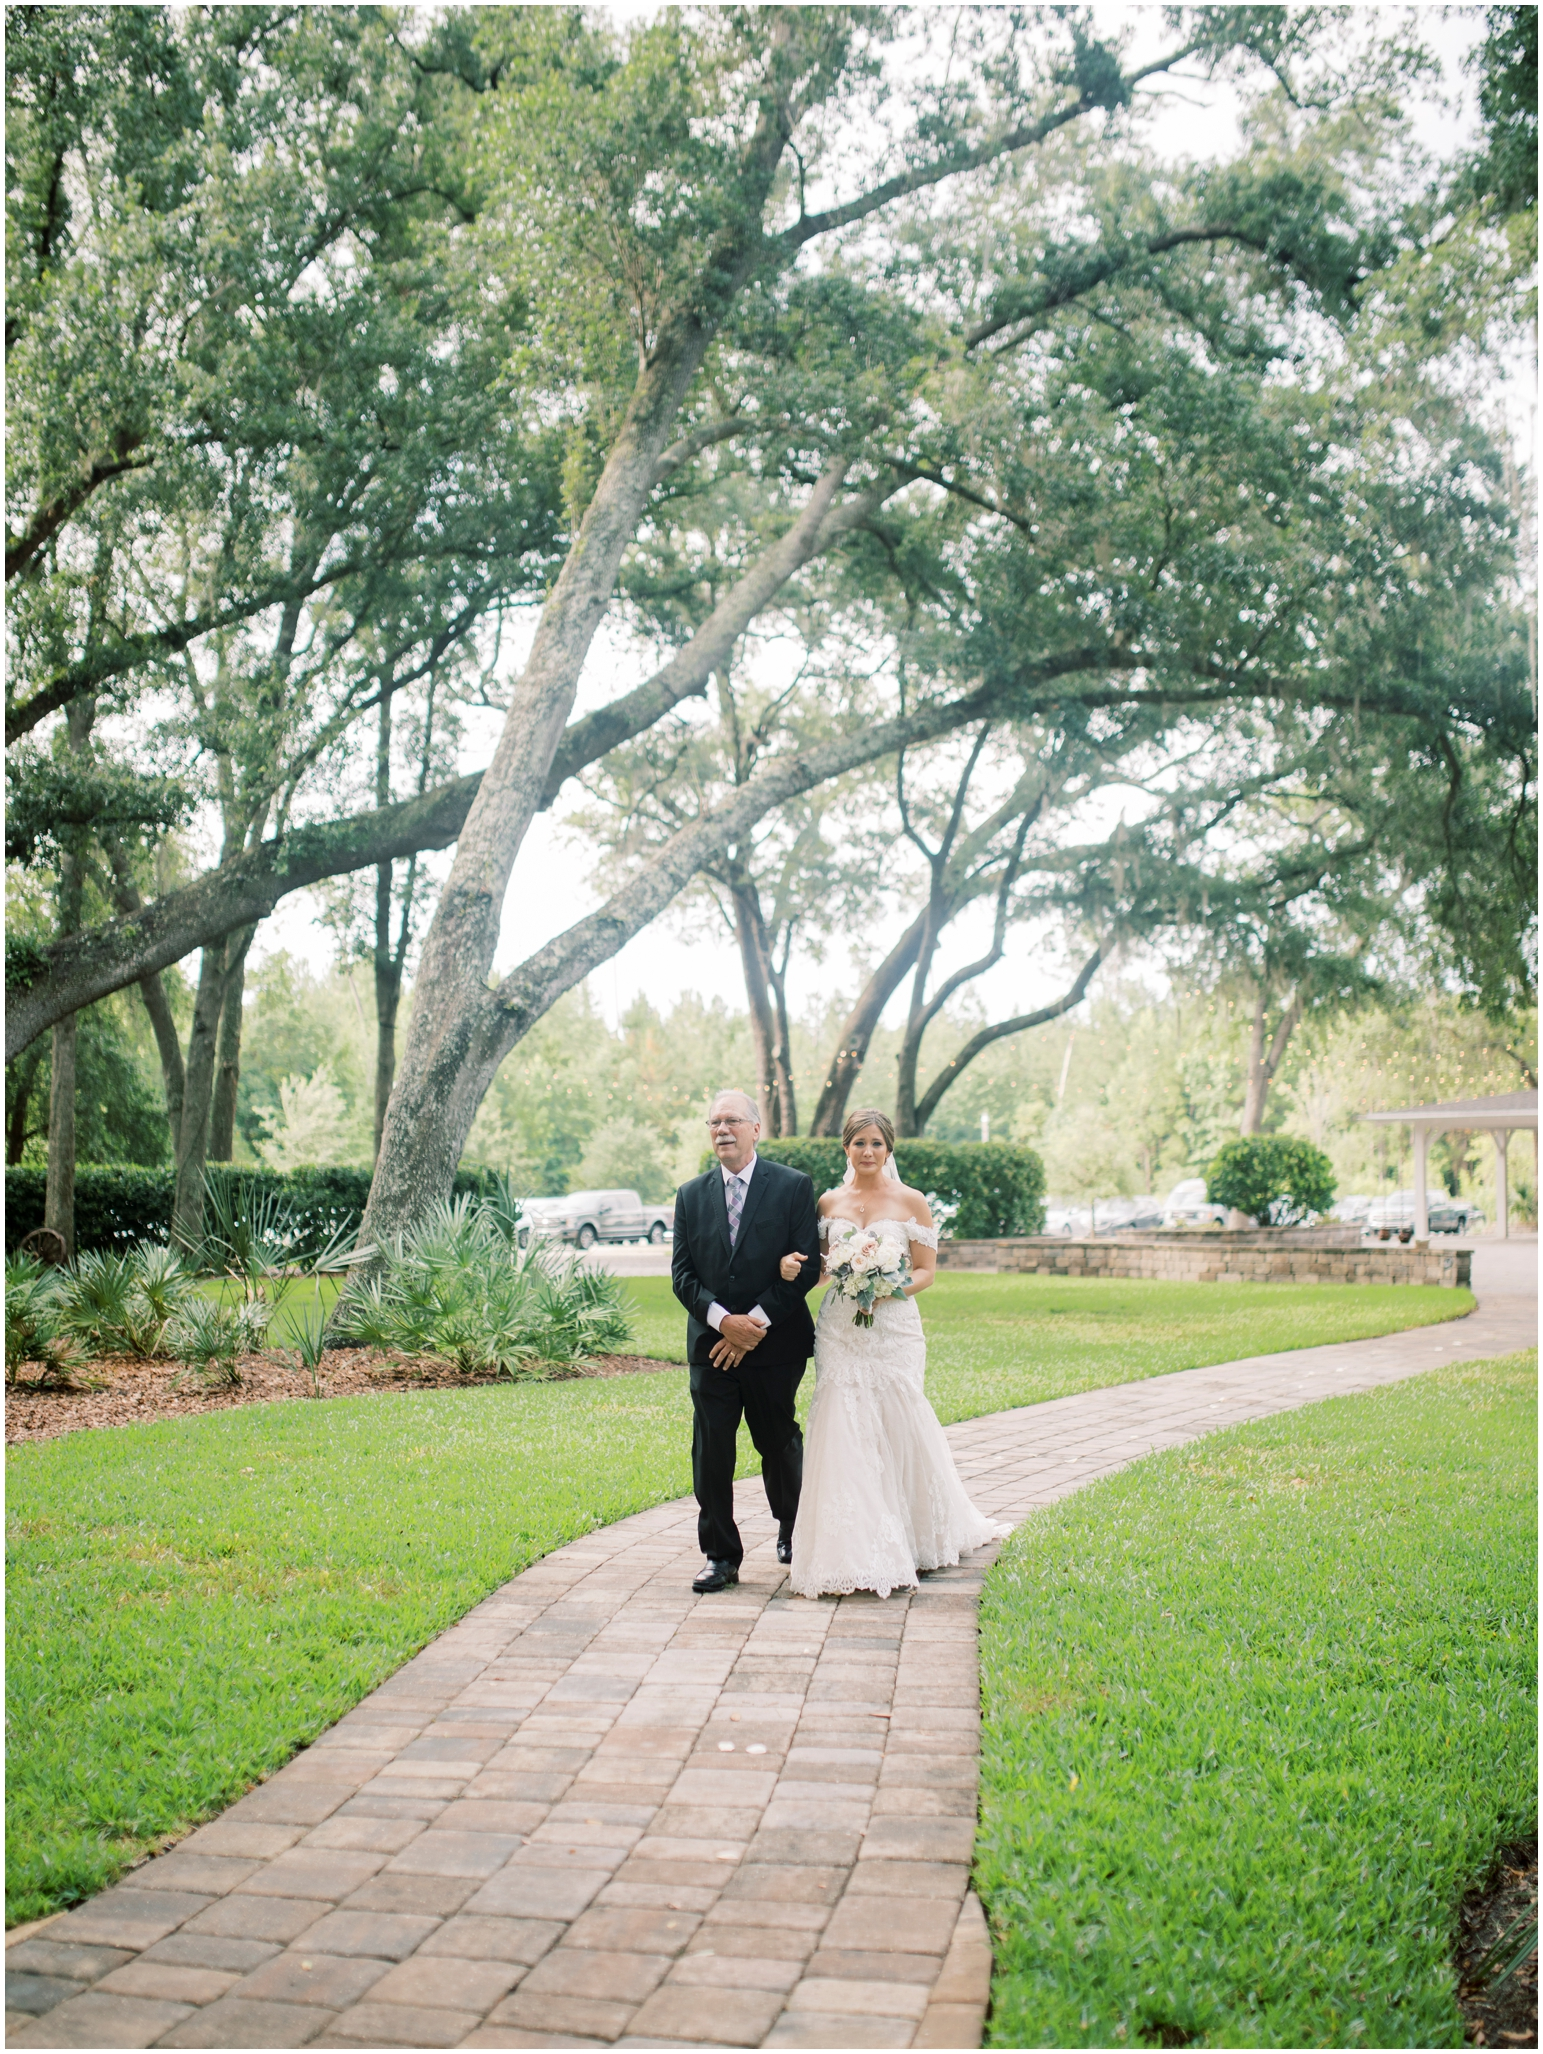 Lisa Silva Photography- Jacksonville, St Augustine, Fernandina Beach, Amelia Island, Ponte Vedra Beach, North East Florida Fine Art Film Photographer- Ashley and Shawn's wedding at bowing oaks plantation_0059.jpg